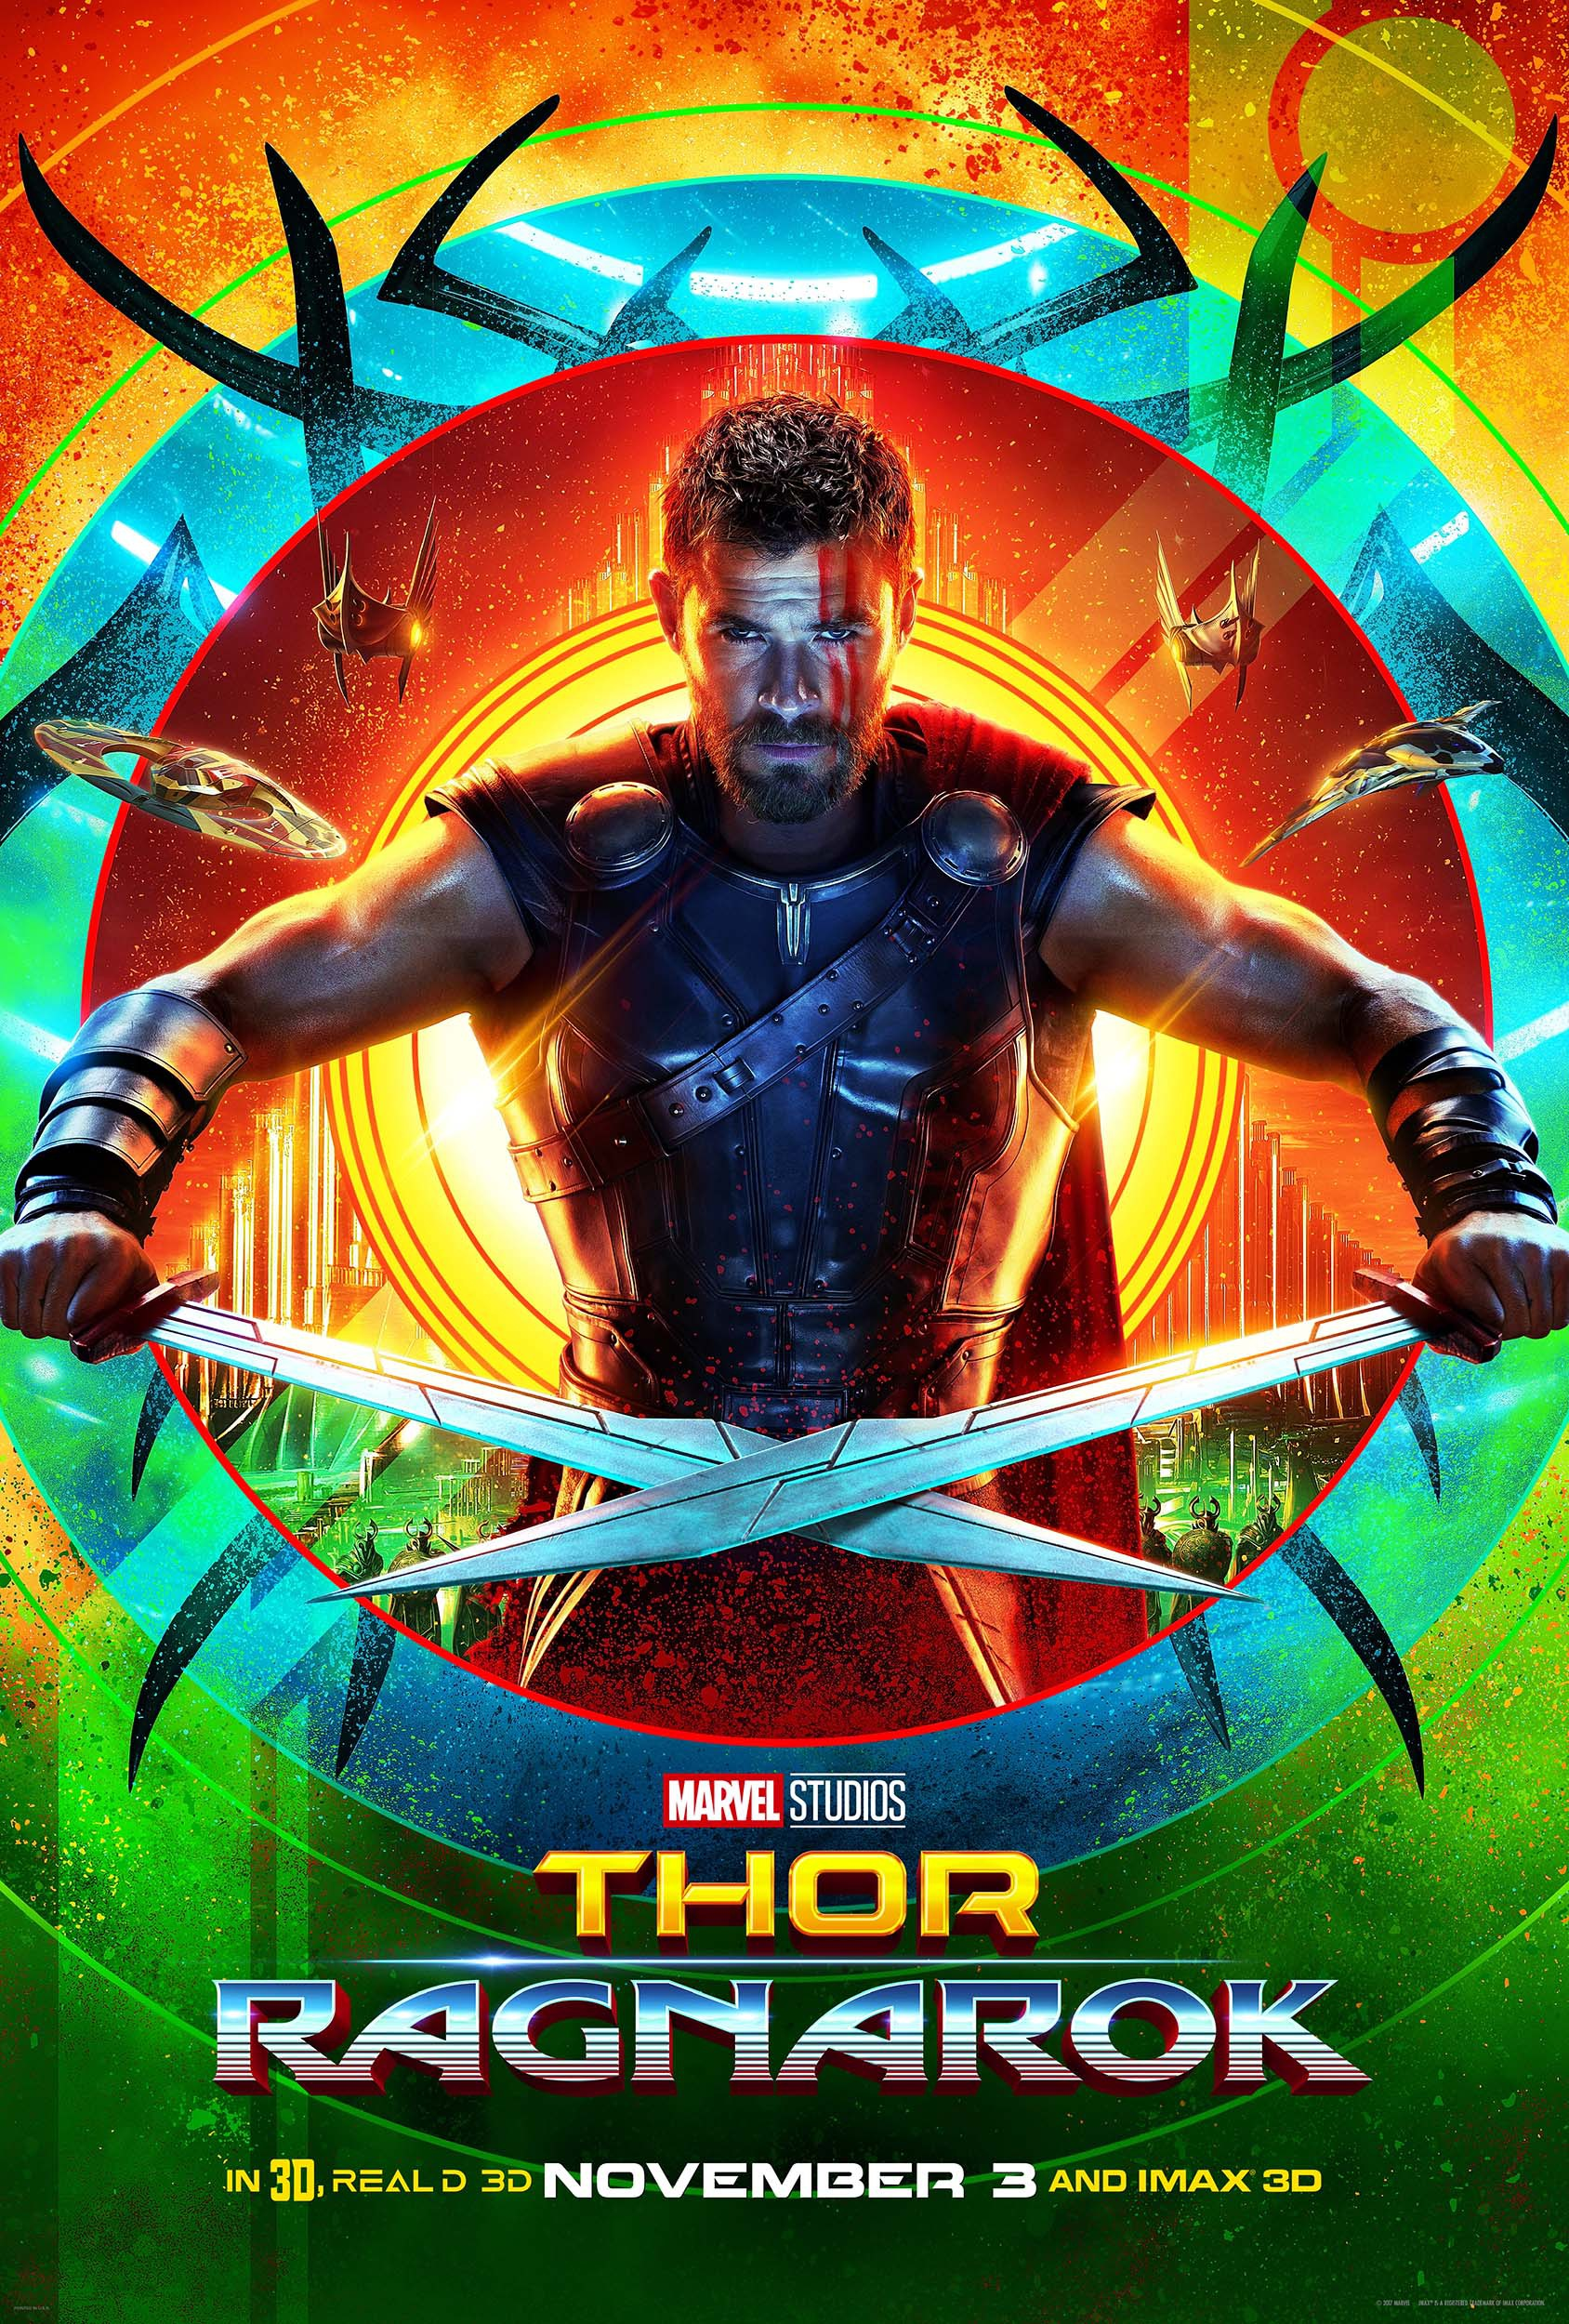 Thor Full Length Movies For Free Online 123movies